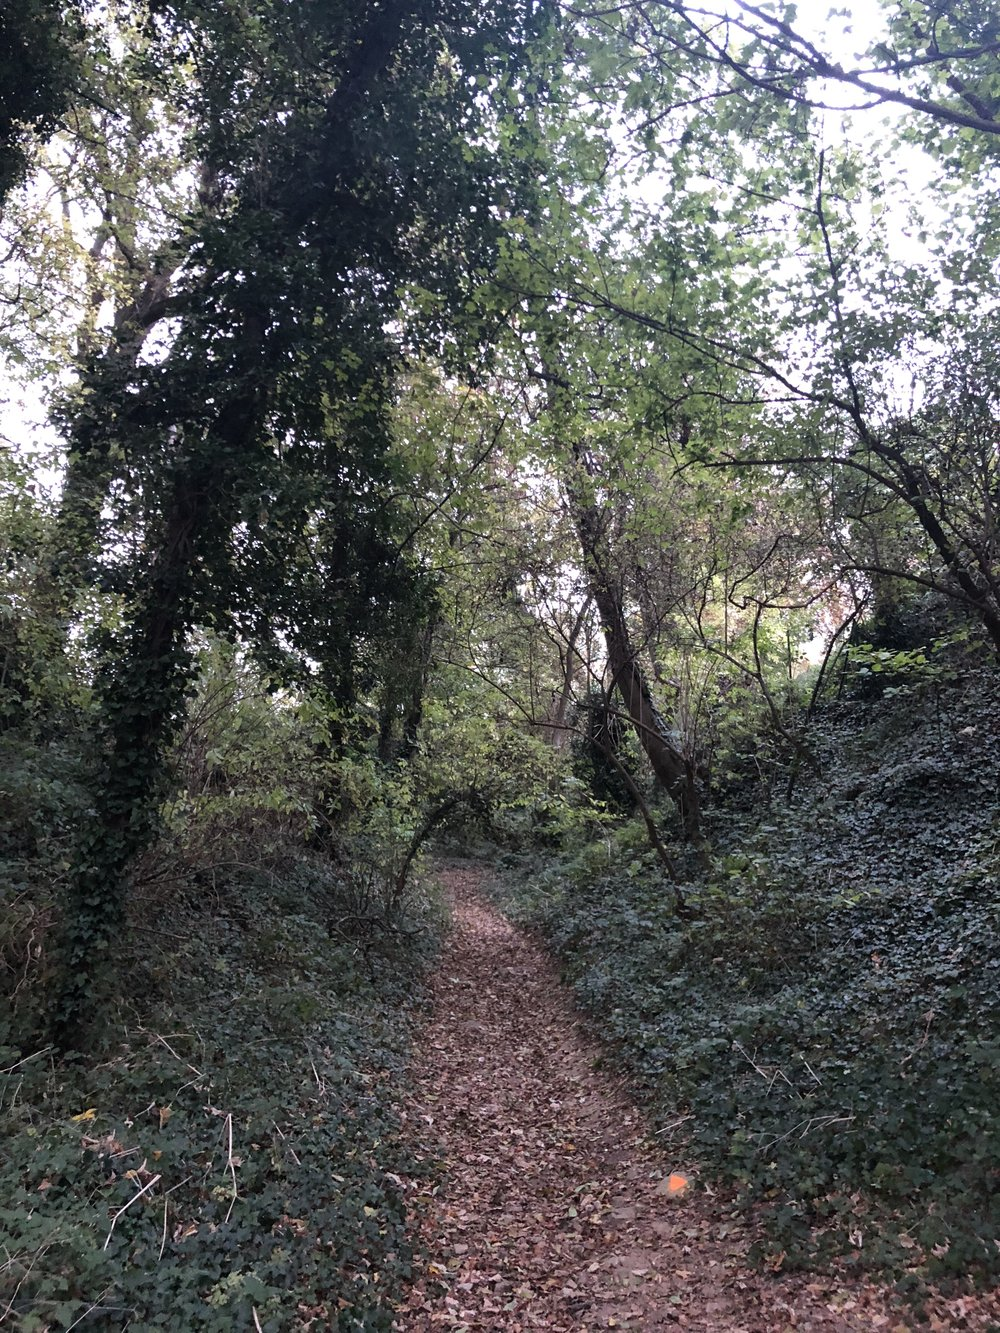 A beautiful forest a few miles from Creil, France.